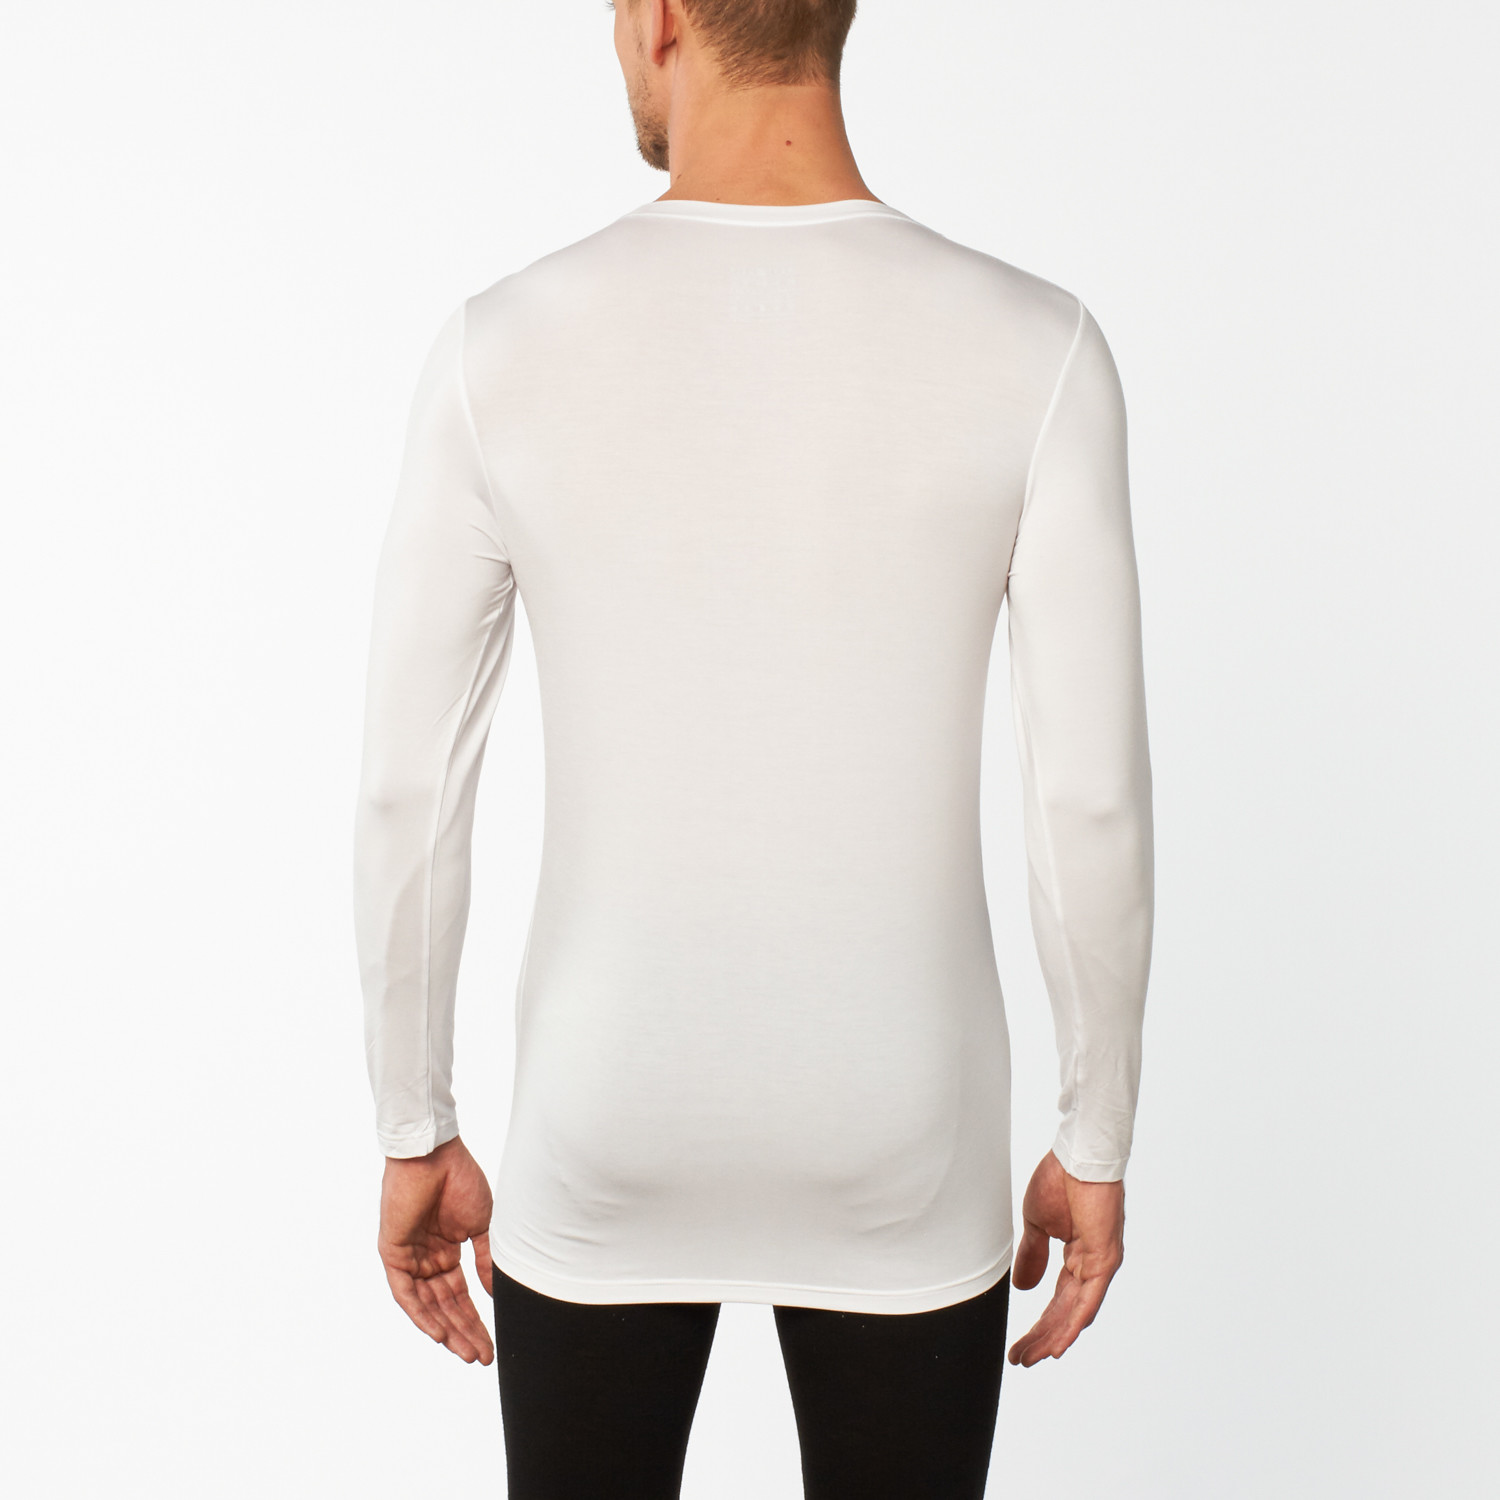 Find great deals on eBay for white undershirt long sleeve. Shop with confidence.